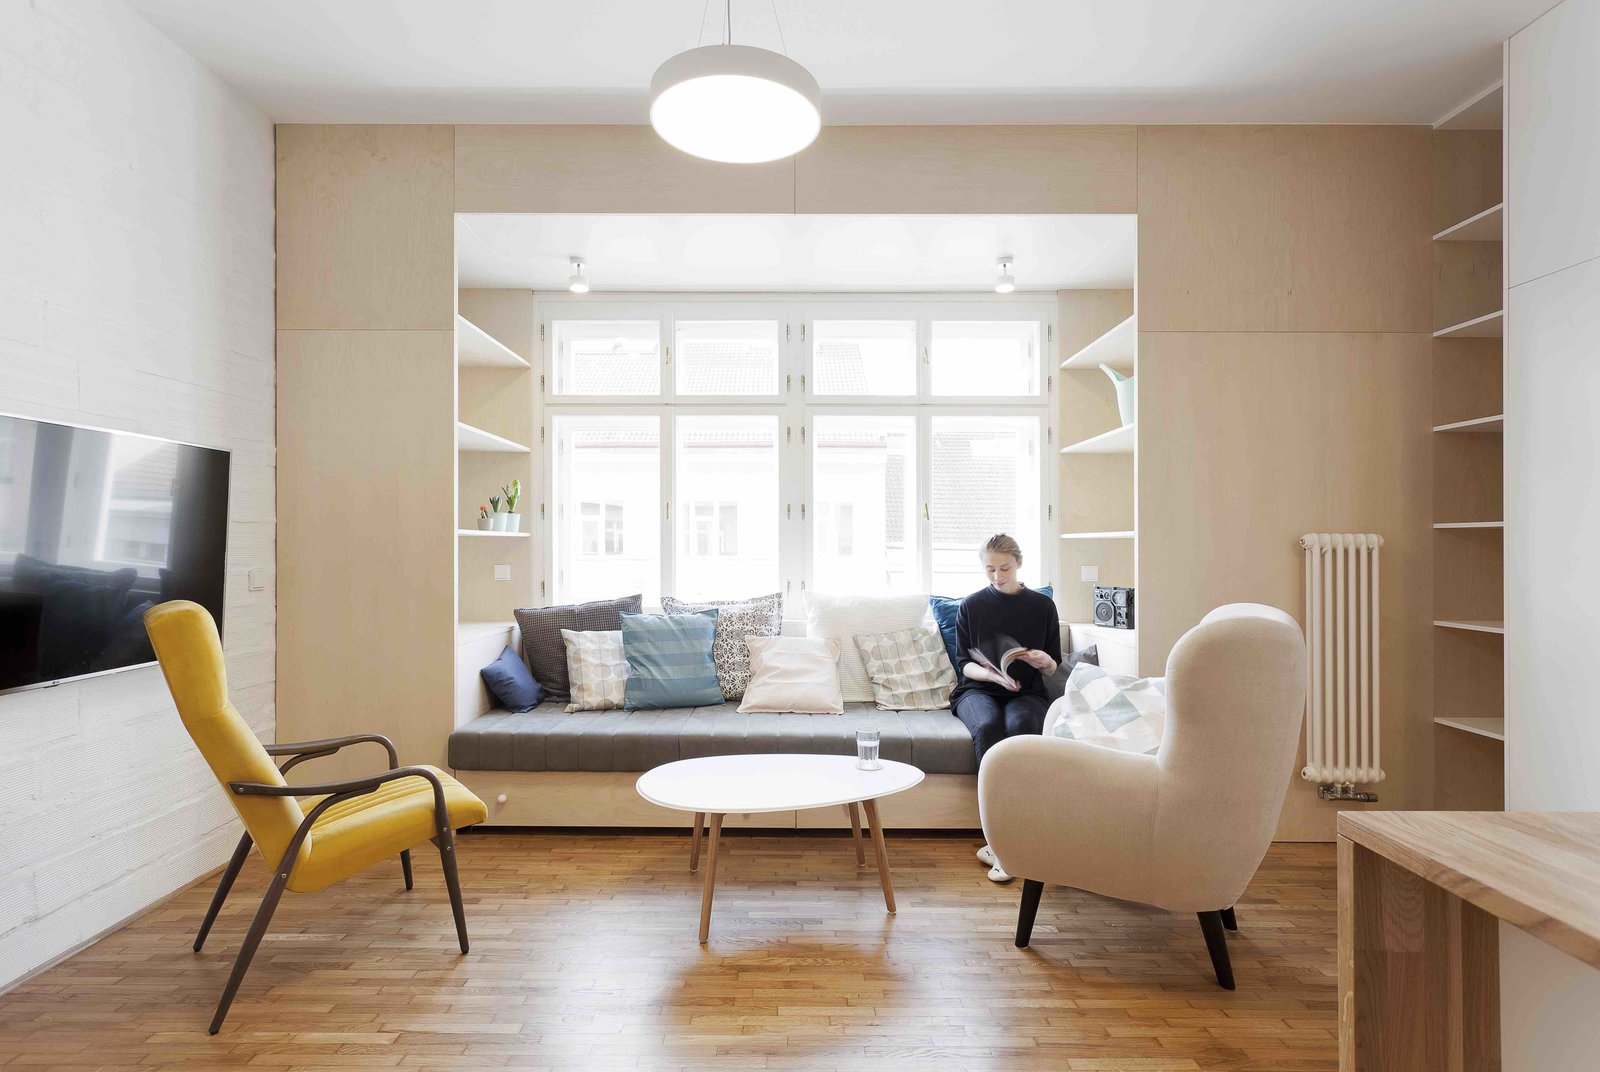 Tagged: Living Room, Chair, Sofa, Bookcase, Coffee Tables, Medium Hardwood Floor, Pendant Lighting, and Shelves.  Best Photos from A Family Apartment in Prague That's Filled With Clever Storage Solutions and Built-In Nooks